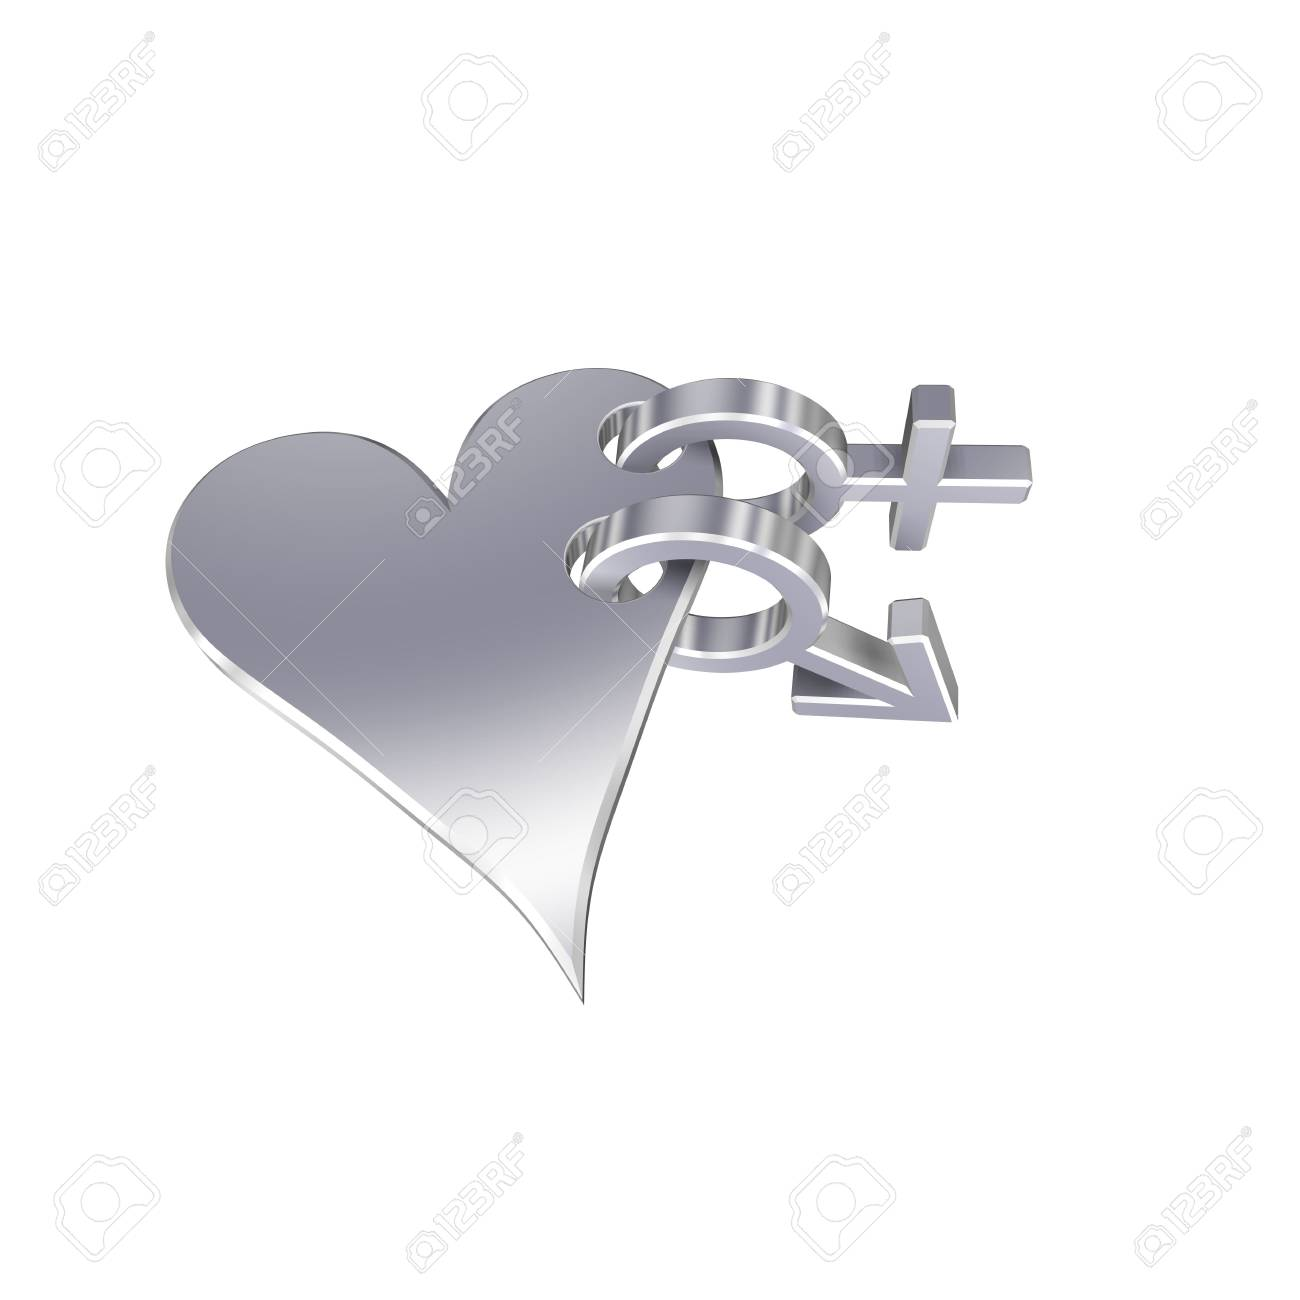 Chrome symbols linked with heart. Computer generated 3D photo rendering. Stock Photo - 4486595